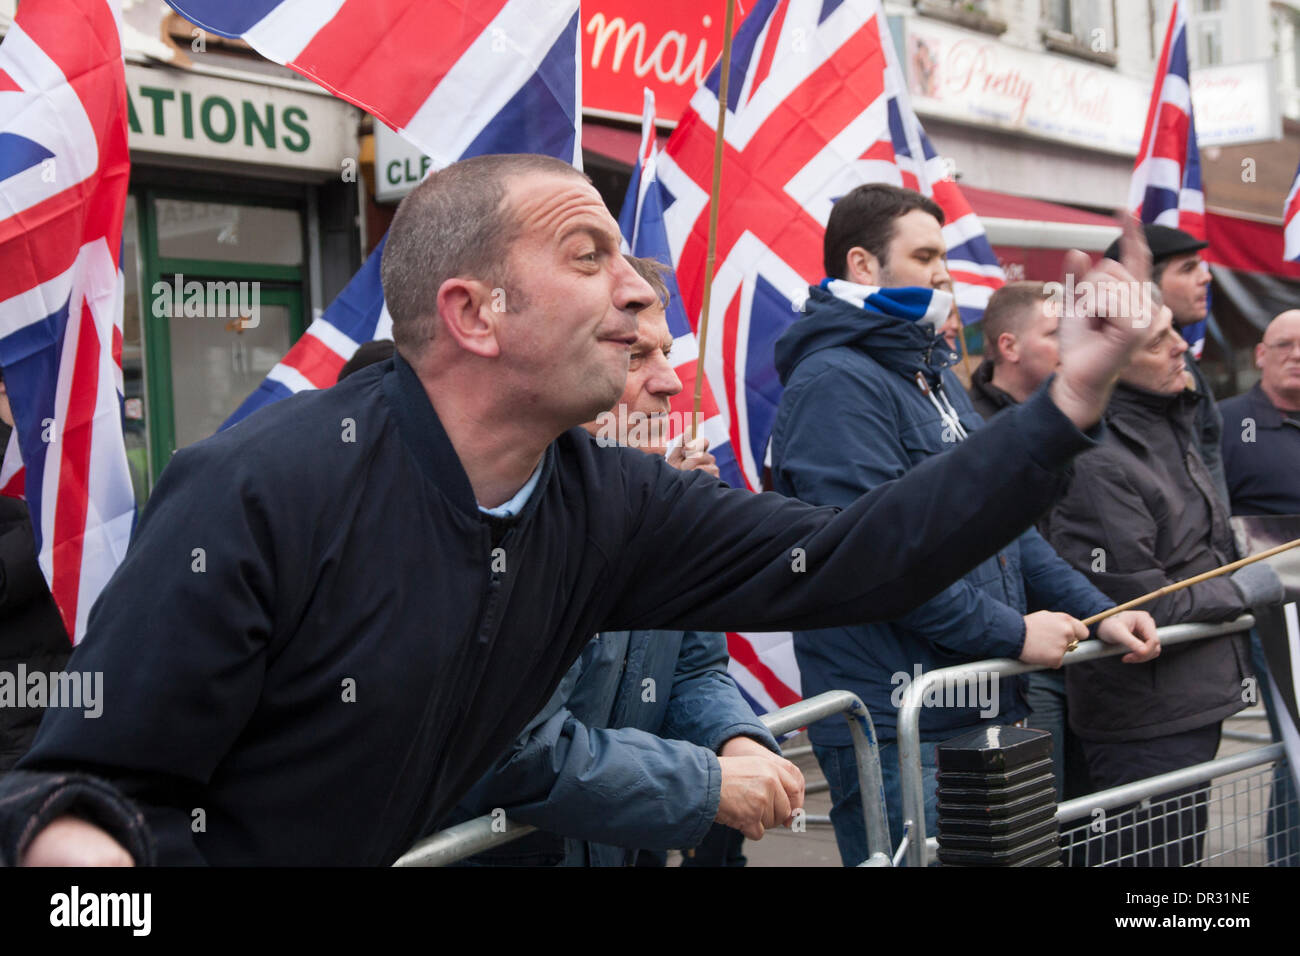 London, UK. 18th Jan, 2014.  'Patriot' group Britain First demonstrates in Cricklewood, North London against the establisment of an office by Egypt's outlawed Muslim Brotherhood. Credit:  Paul Davey/Alamy Live News - Stock Image